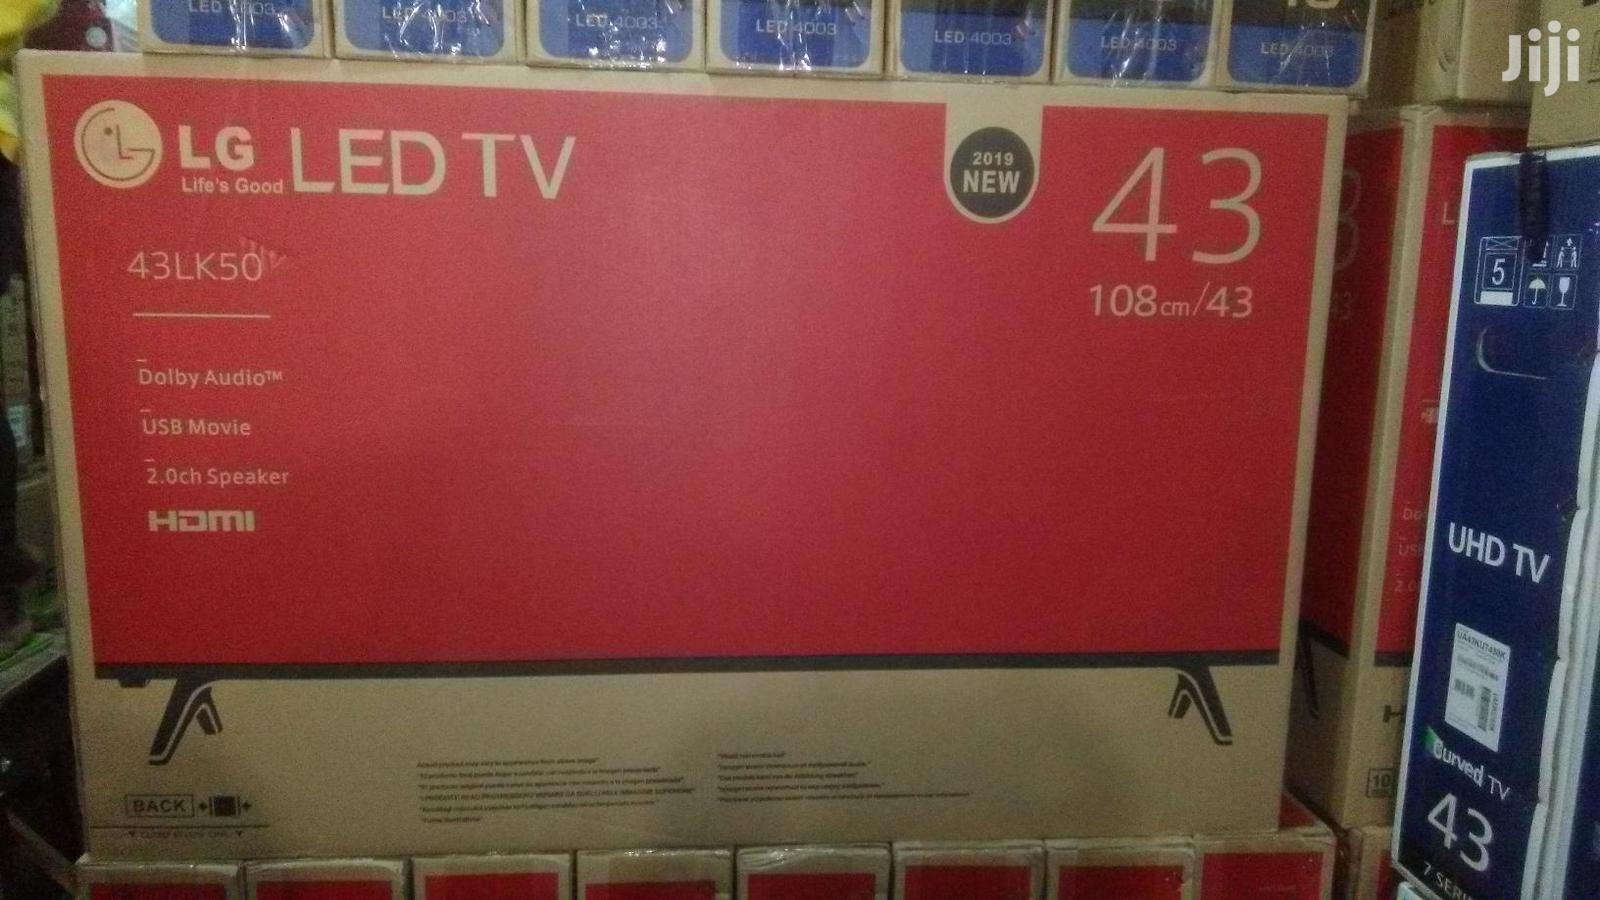 43 Inch LG Full HD LED TV With HDMI And USB Ports